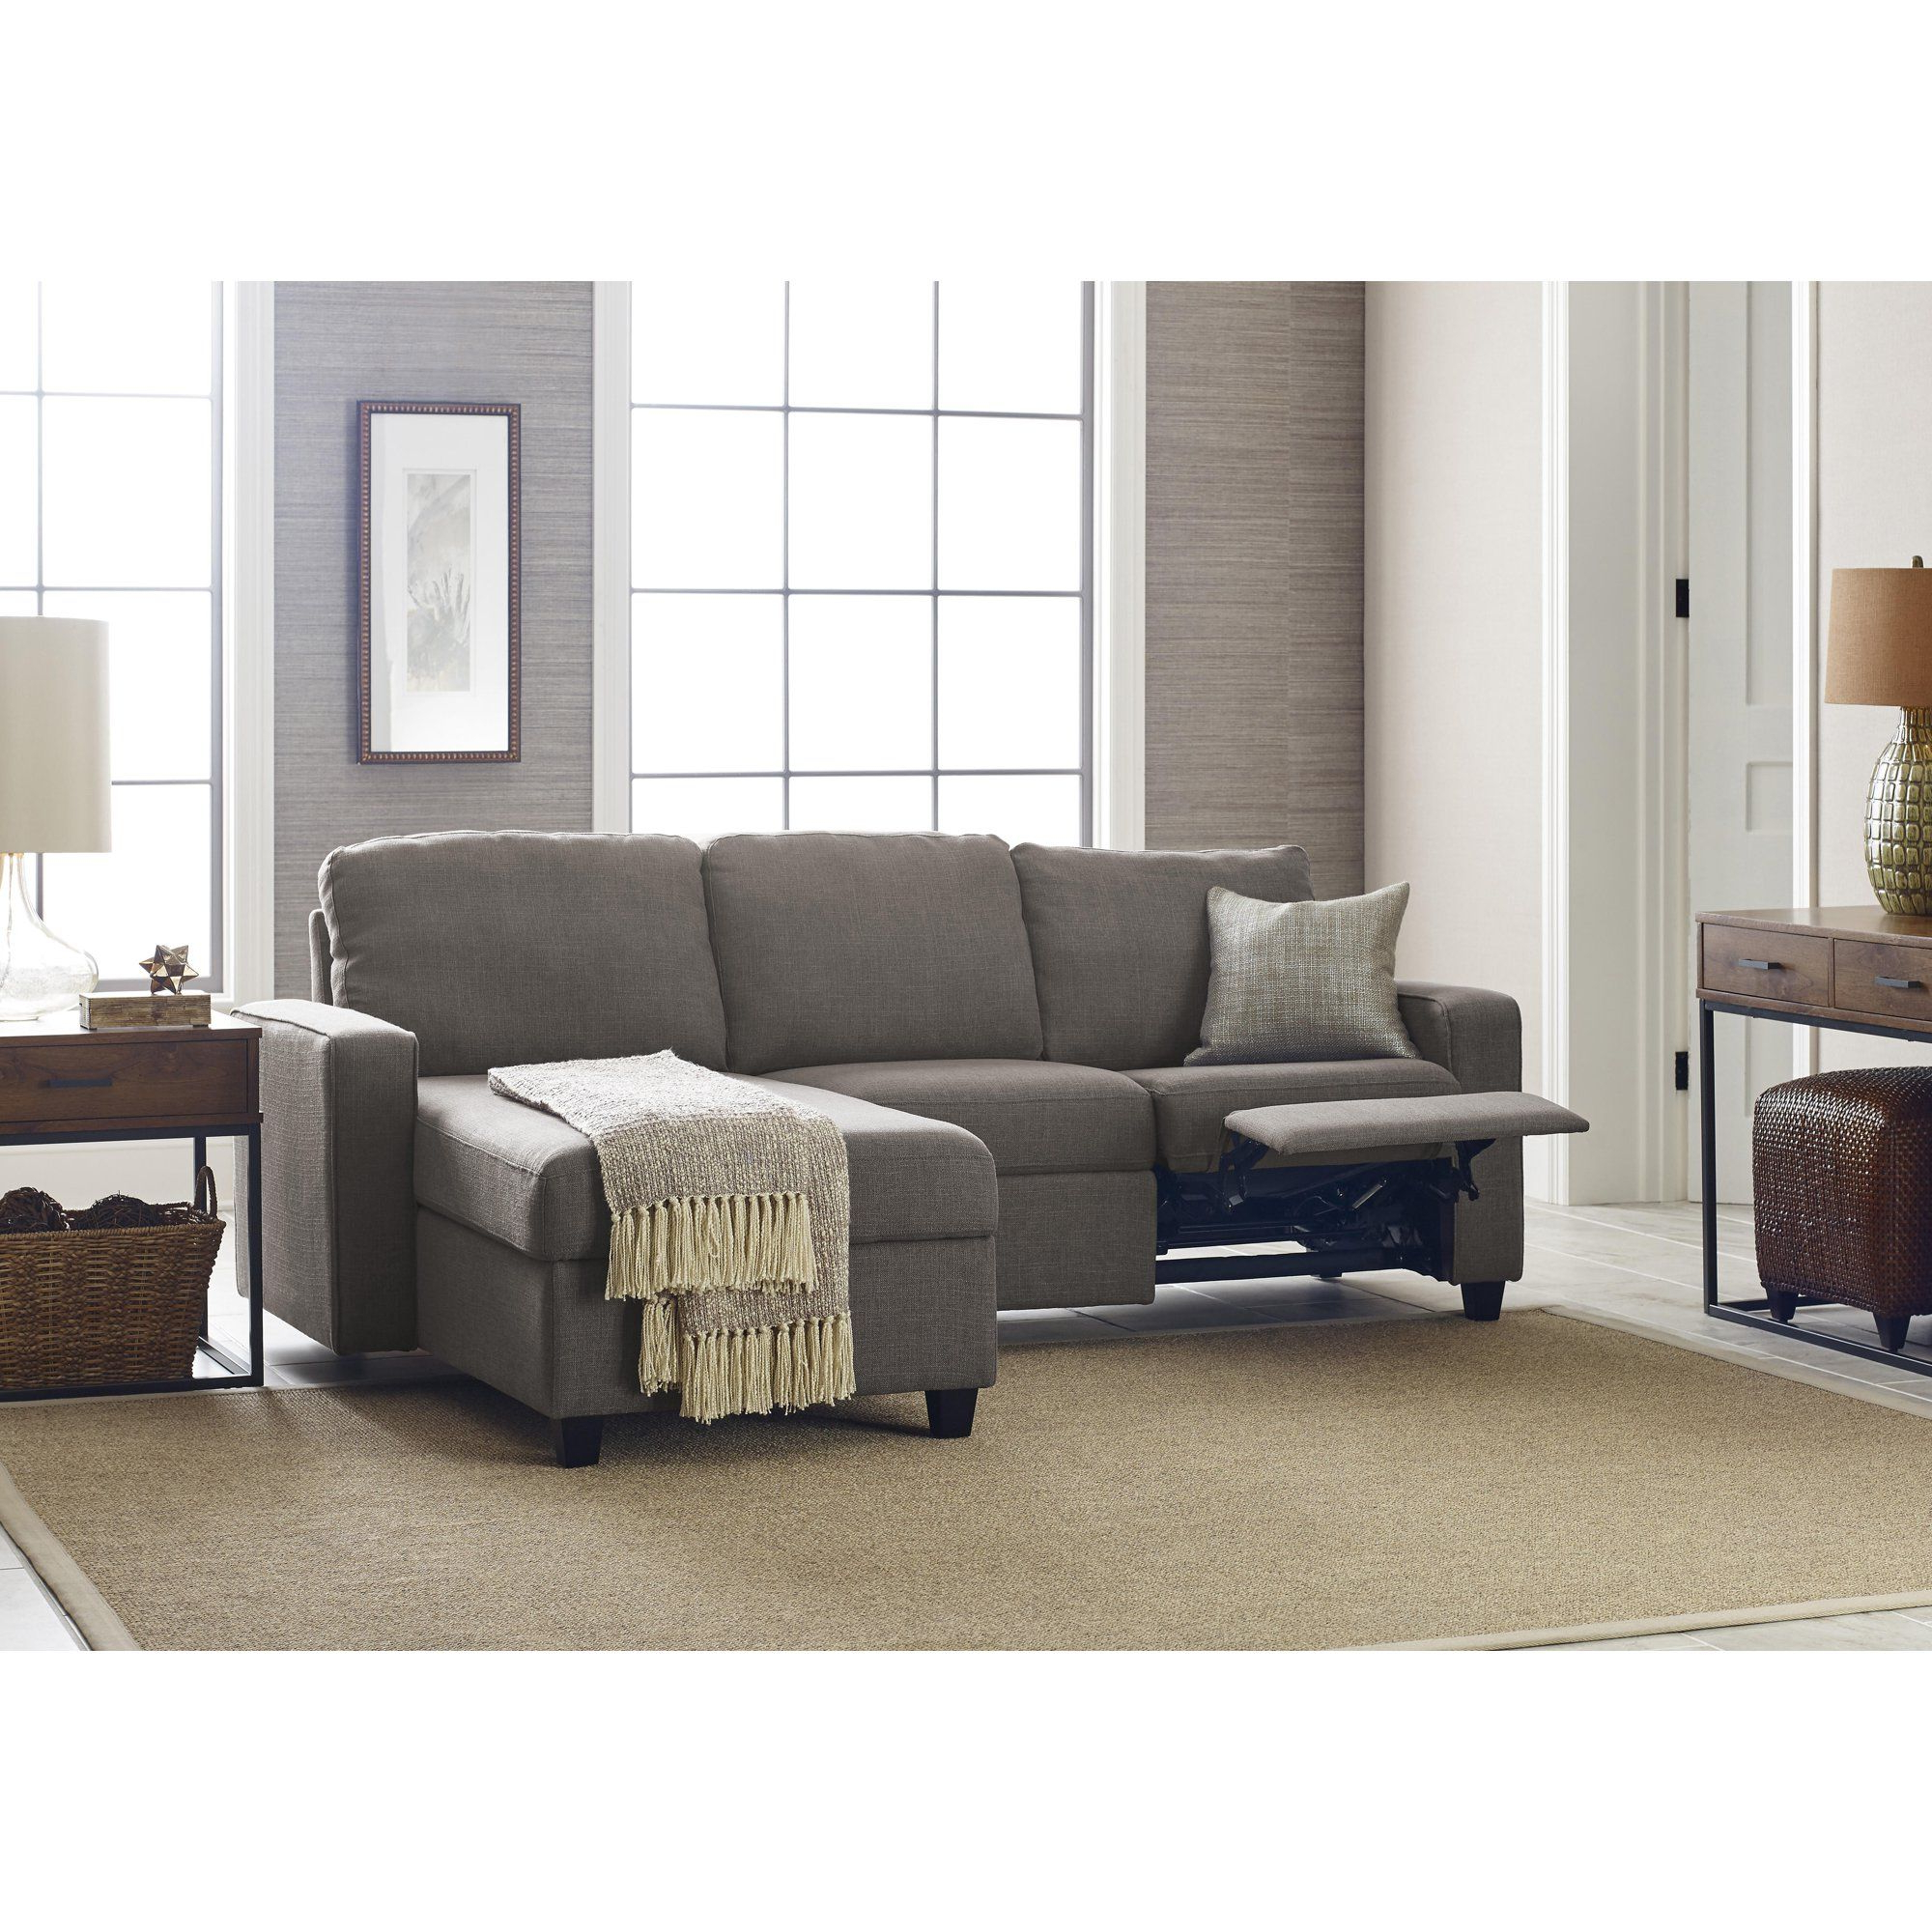 Serta Palisades Reclining Sectional With Right Storage For Newest Copenhagen Reclining Sectional Sofas With Right Storage Chaise (View 7 of 25)